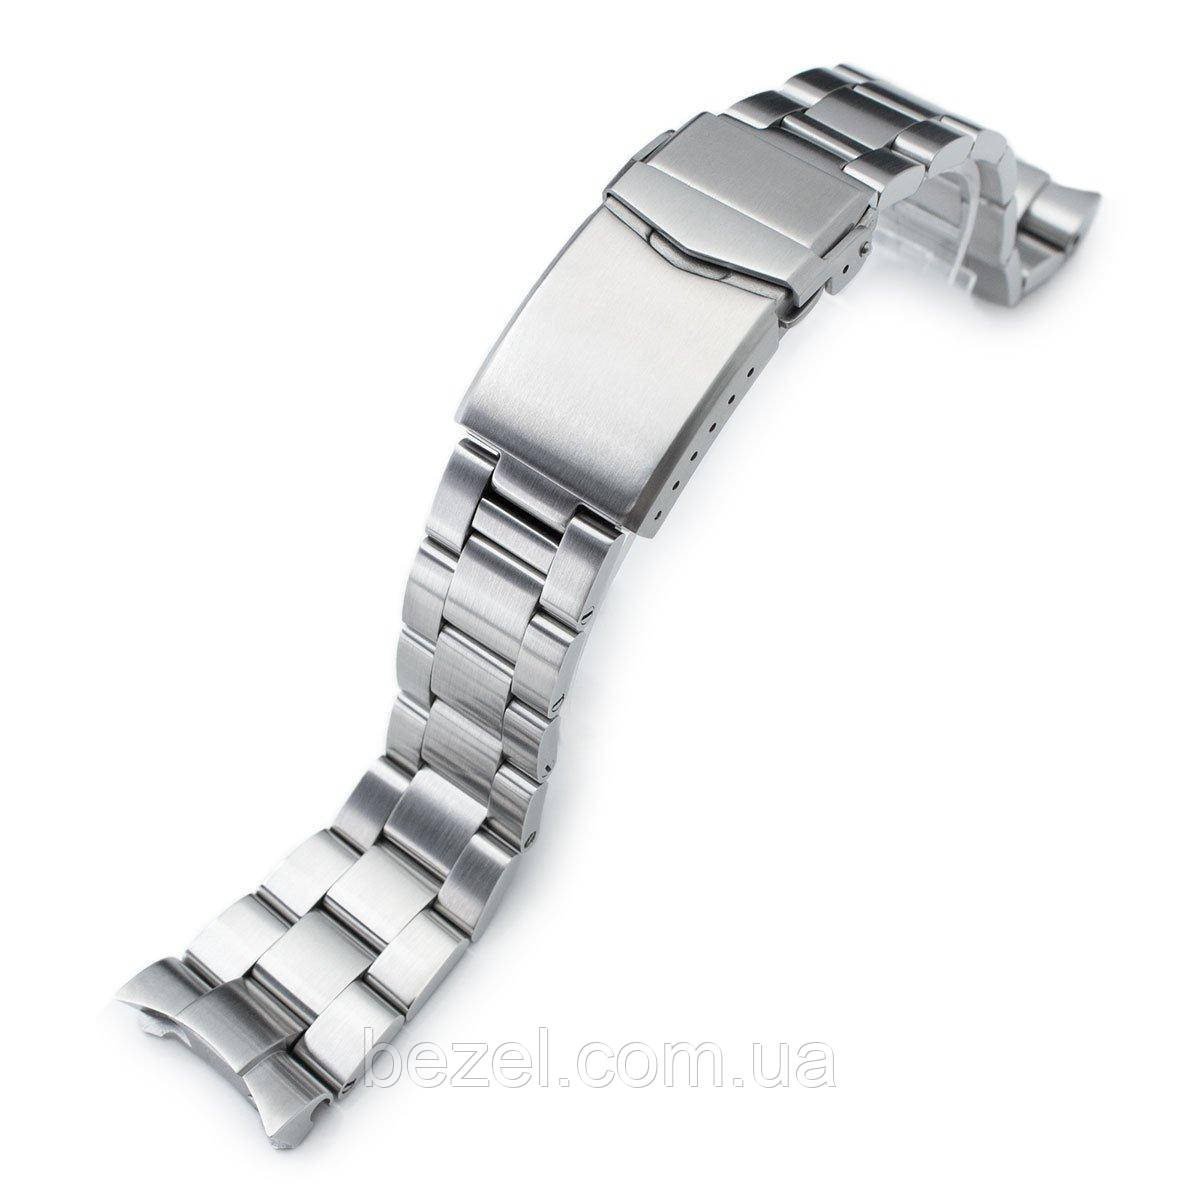 22mm Super 3D Oyster watch band for SEIKO Diver SKX007/009/011, Brushed, V-Clasp Button Double Lock